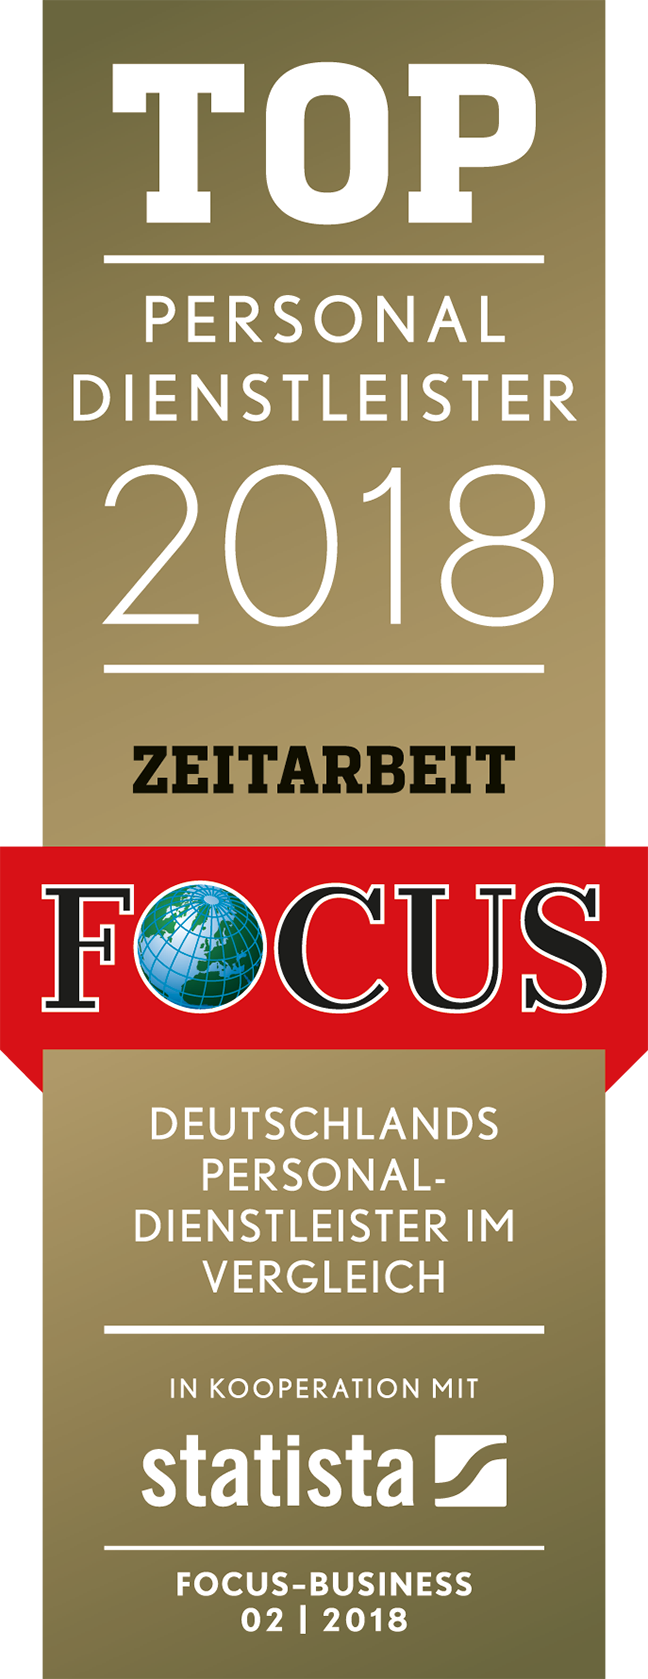 Top Personaldienstleister 2016 Focus